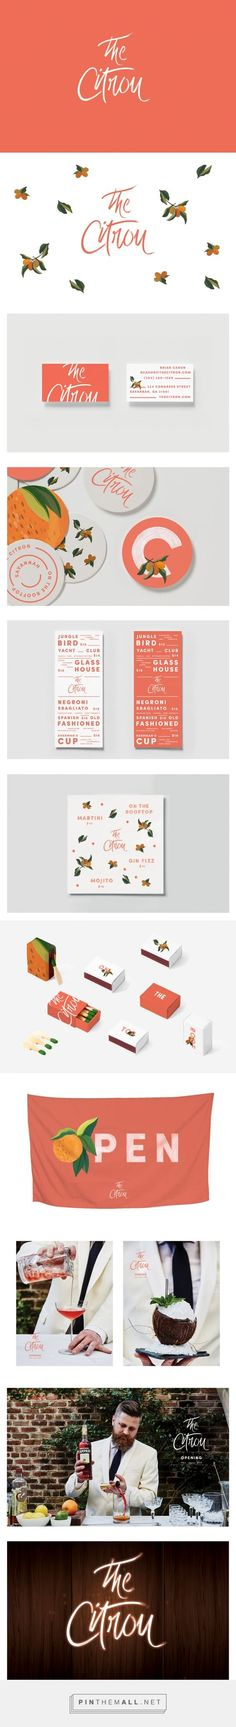 The Citron Branding by Maud Passini | Fivestar Branding – Design and Branding Agency & Inspiration Gallery